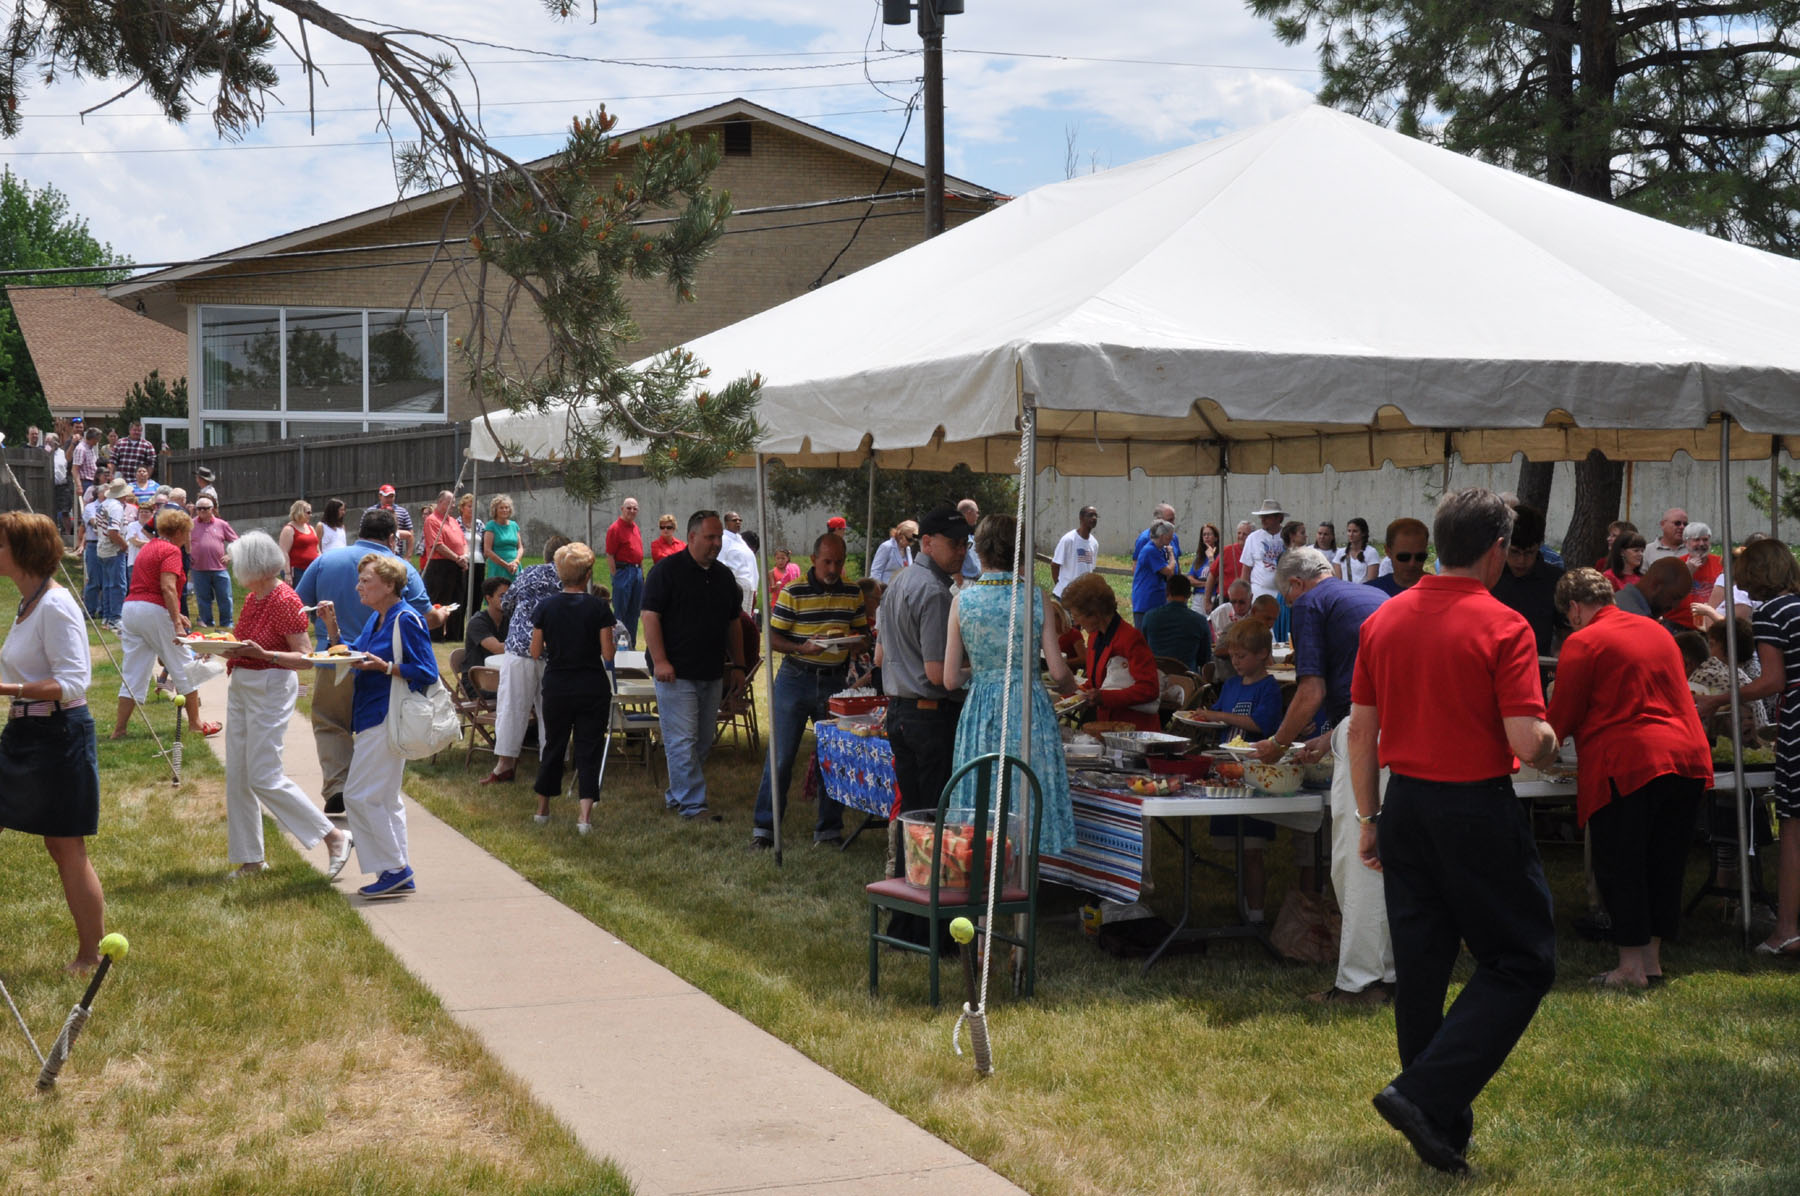 More than 250 people participate in a community picnic sponsored by Arapahoe Road Baptist Church - & While tackling Denveru0027s challenges church embraces CP global ...